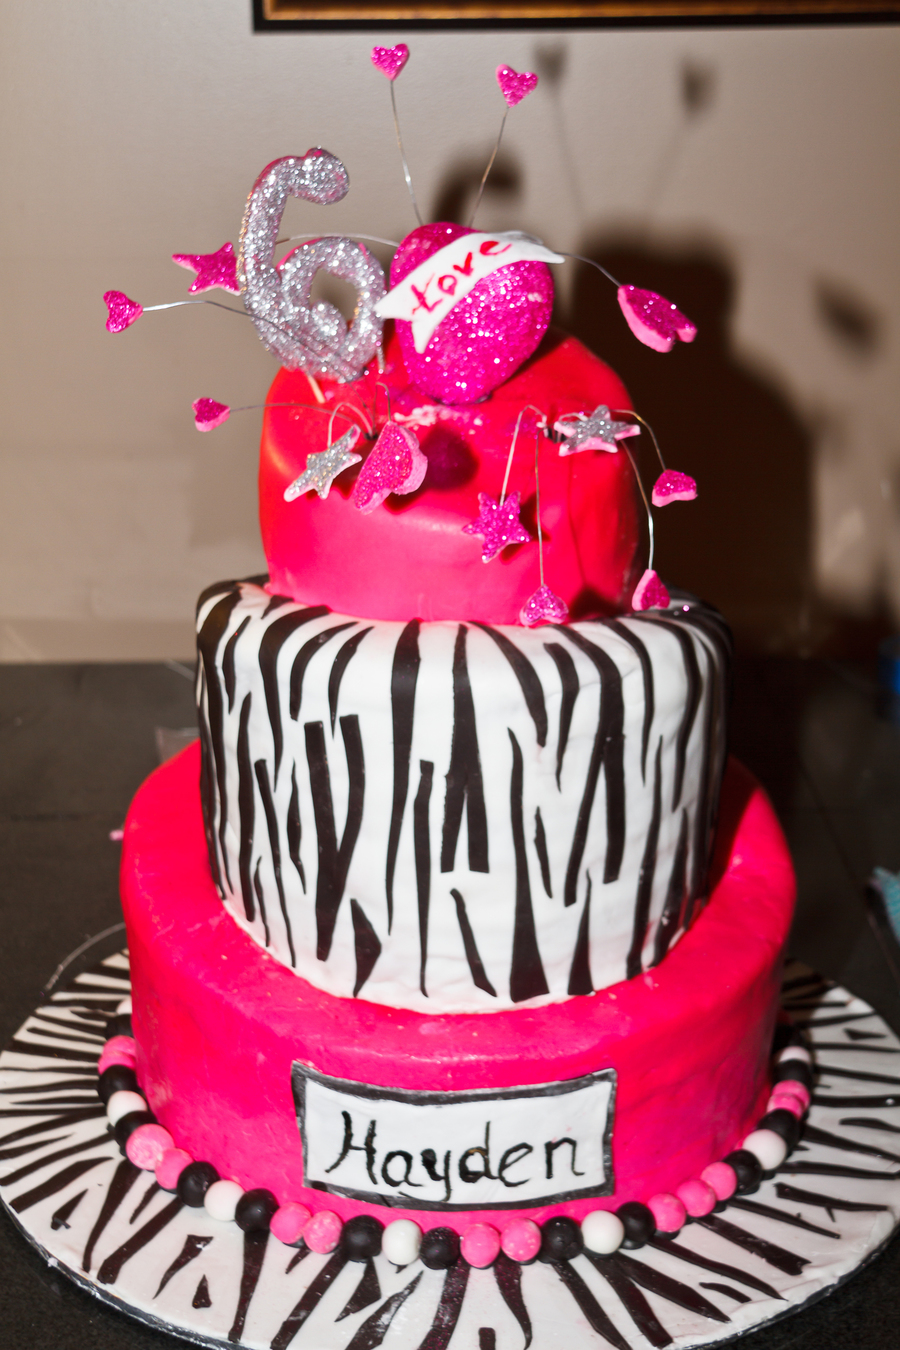 Hot Pink Topsy Turvy Birthday Cake For 6 Year Old Girl It